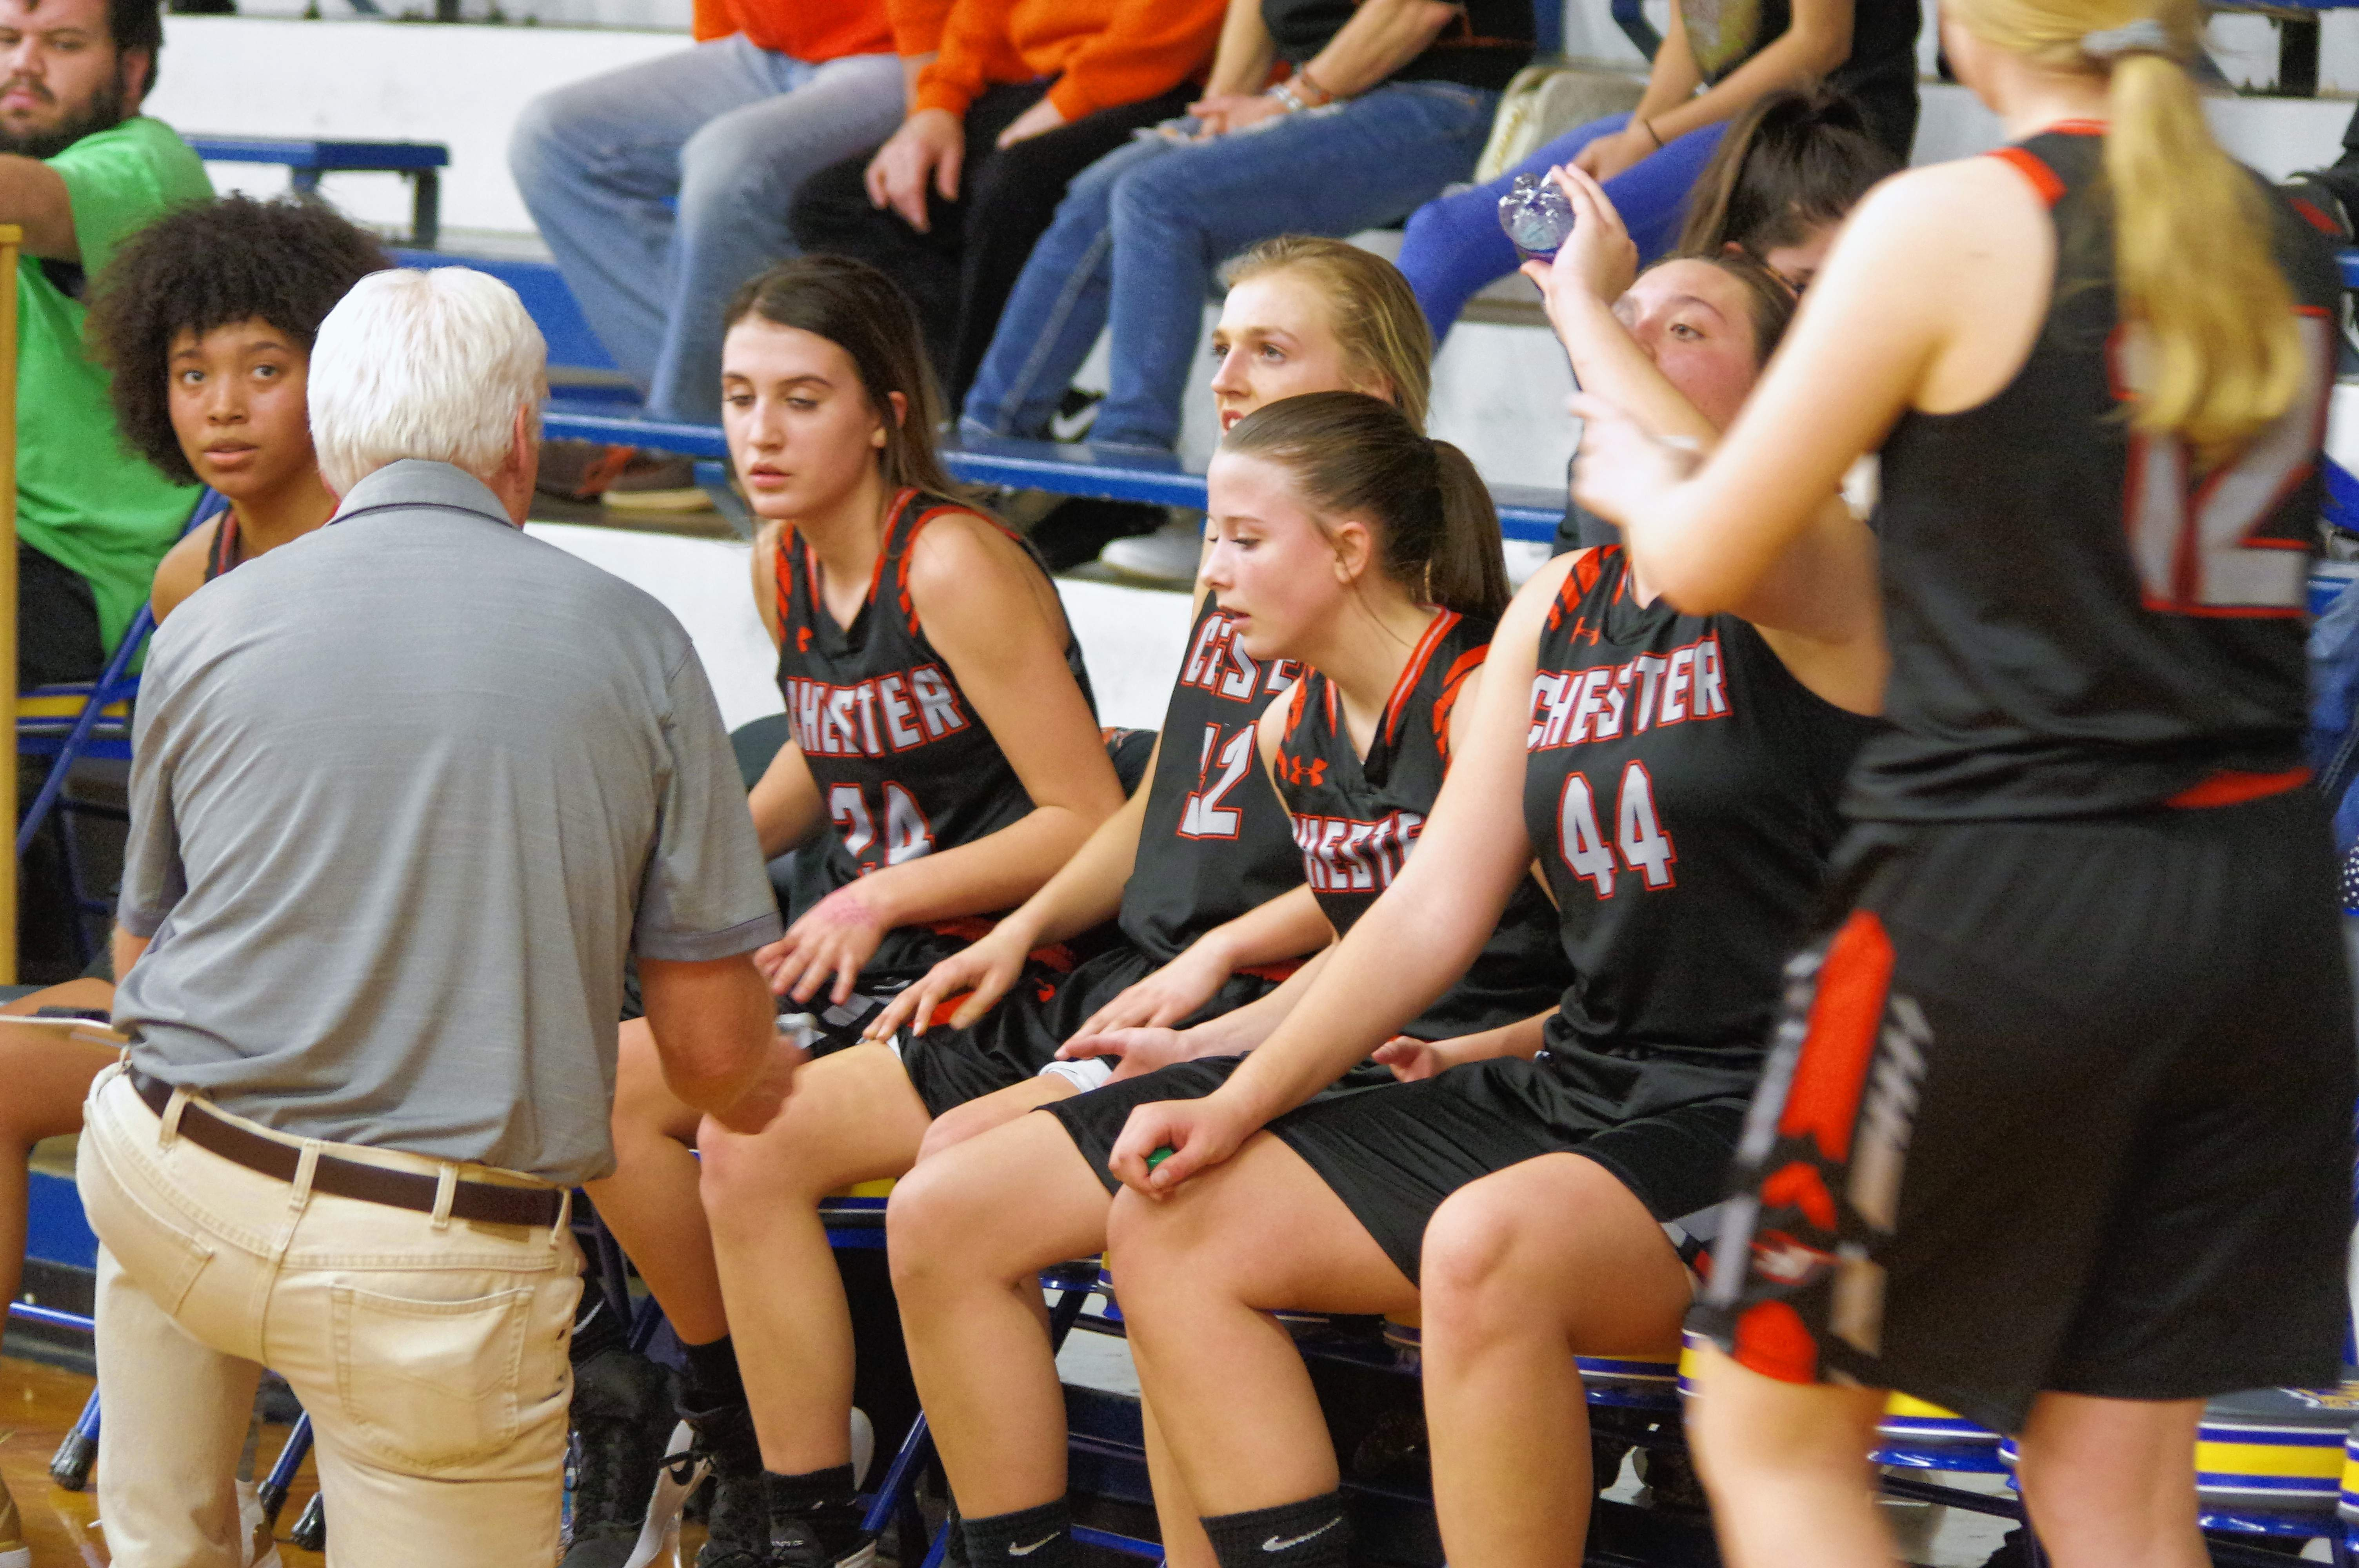 Chester Head Coach Pat Knowles calls a time out with 3:48 remaining in the game. On the bench, from left, are Destiny Williams, Reese Chandler,Josie Kattenbraker, Kendall Williams and Alyssa Seymour.